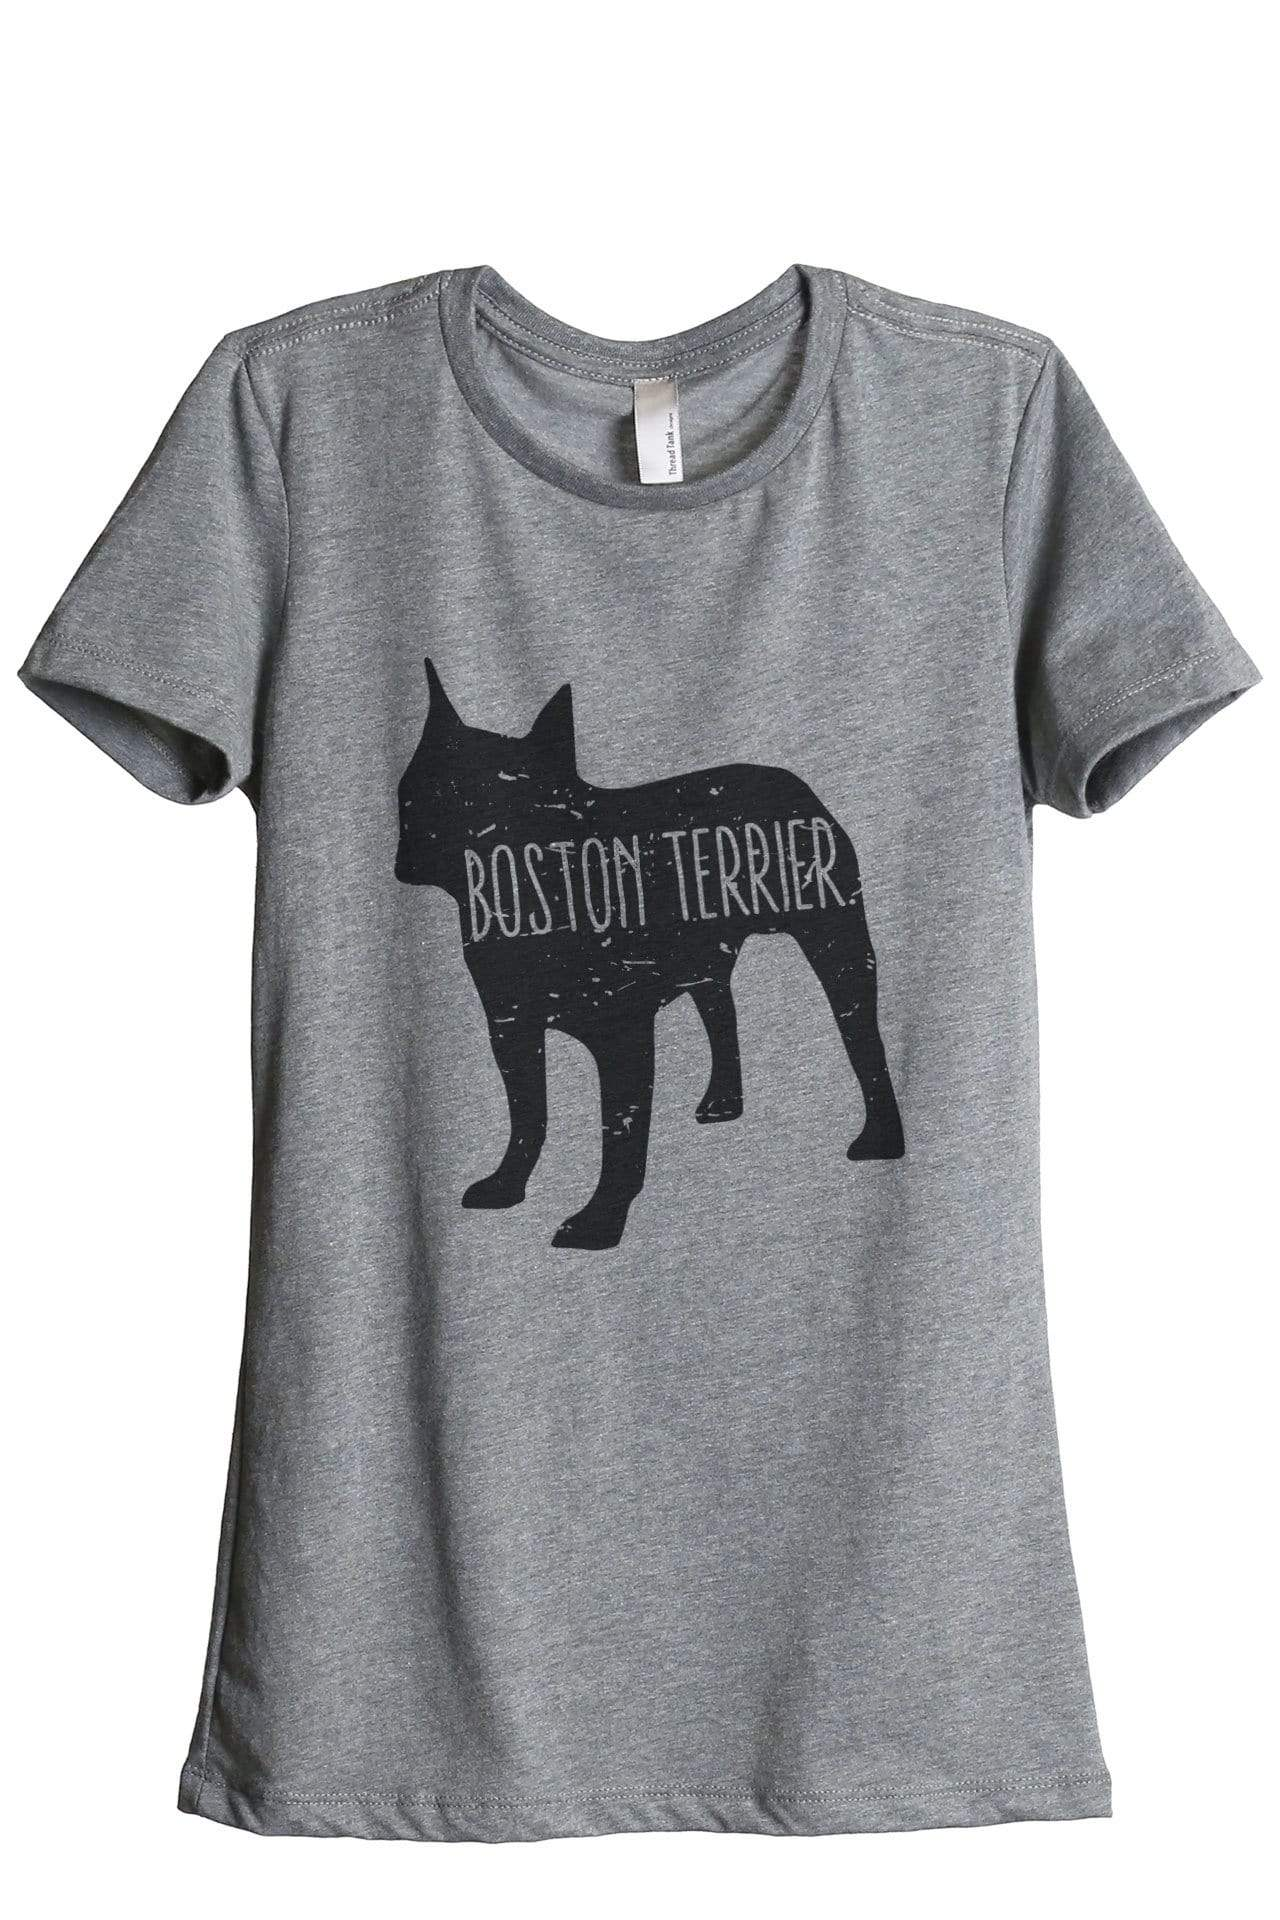 Boston Terrier Dog Silhouette Graphic Women's Heather Grey Relaxed Crew T-Shirt Tee Top